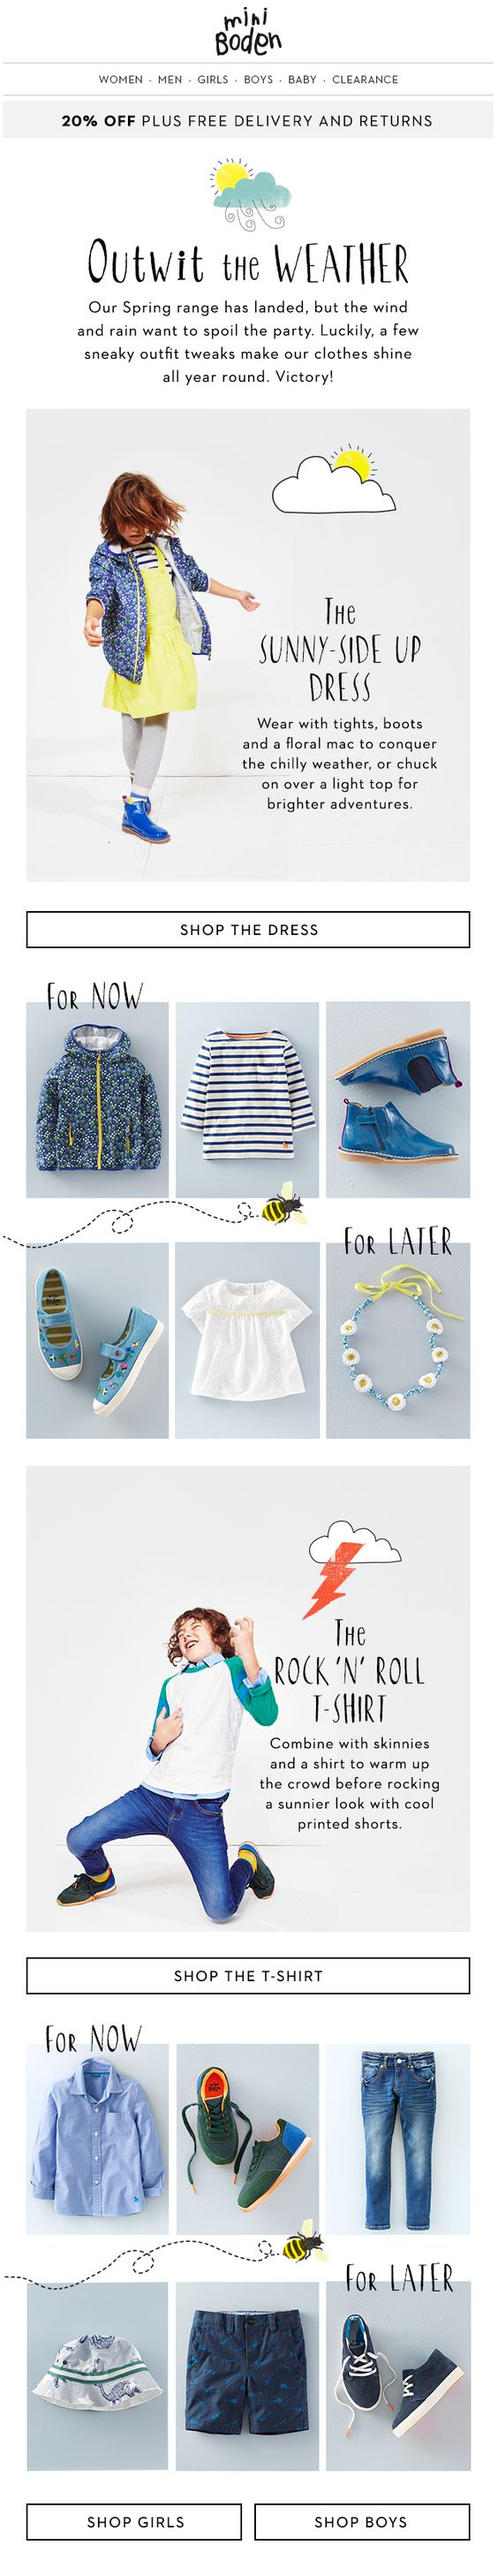 Mini boden minis and newsletter ideas on pinterest for Boden newsletter